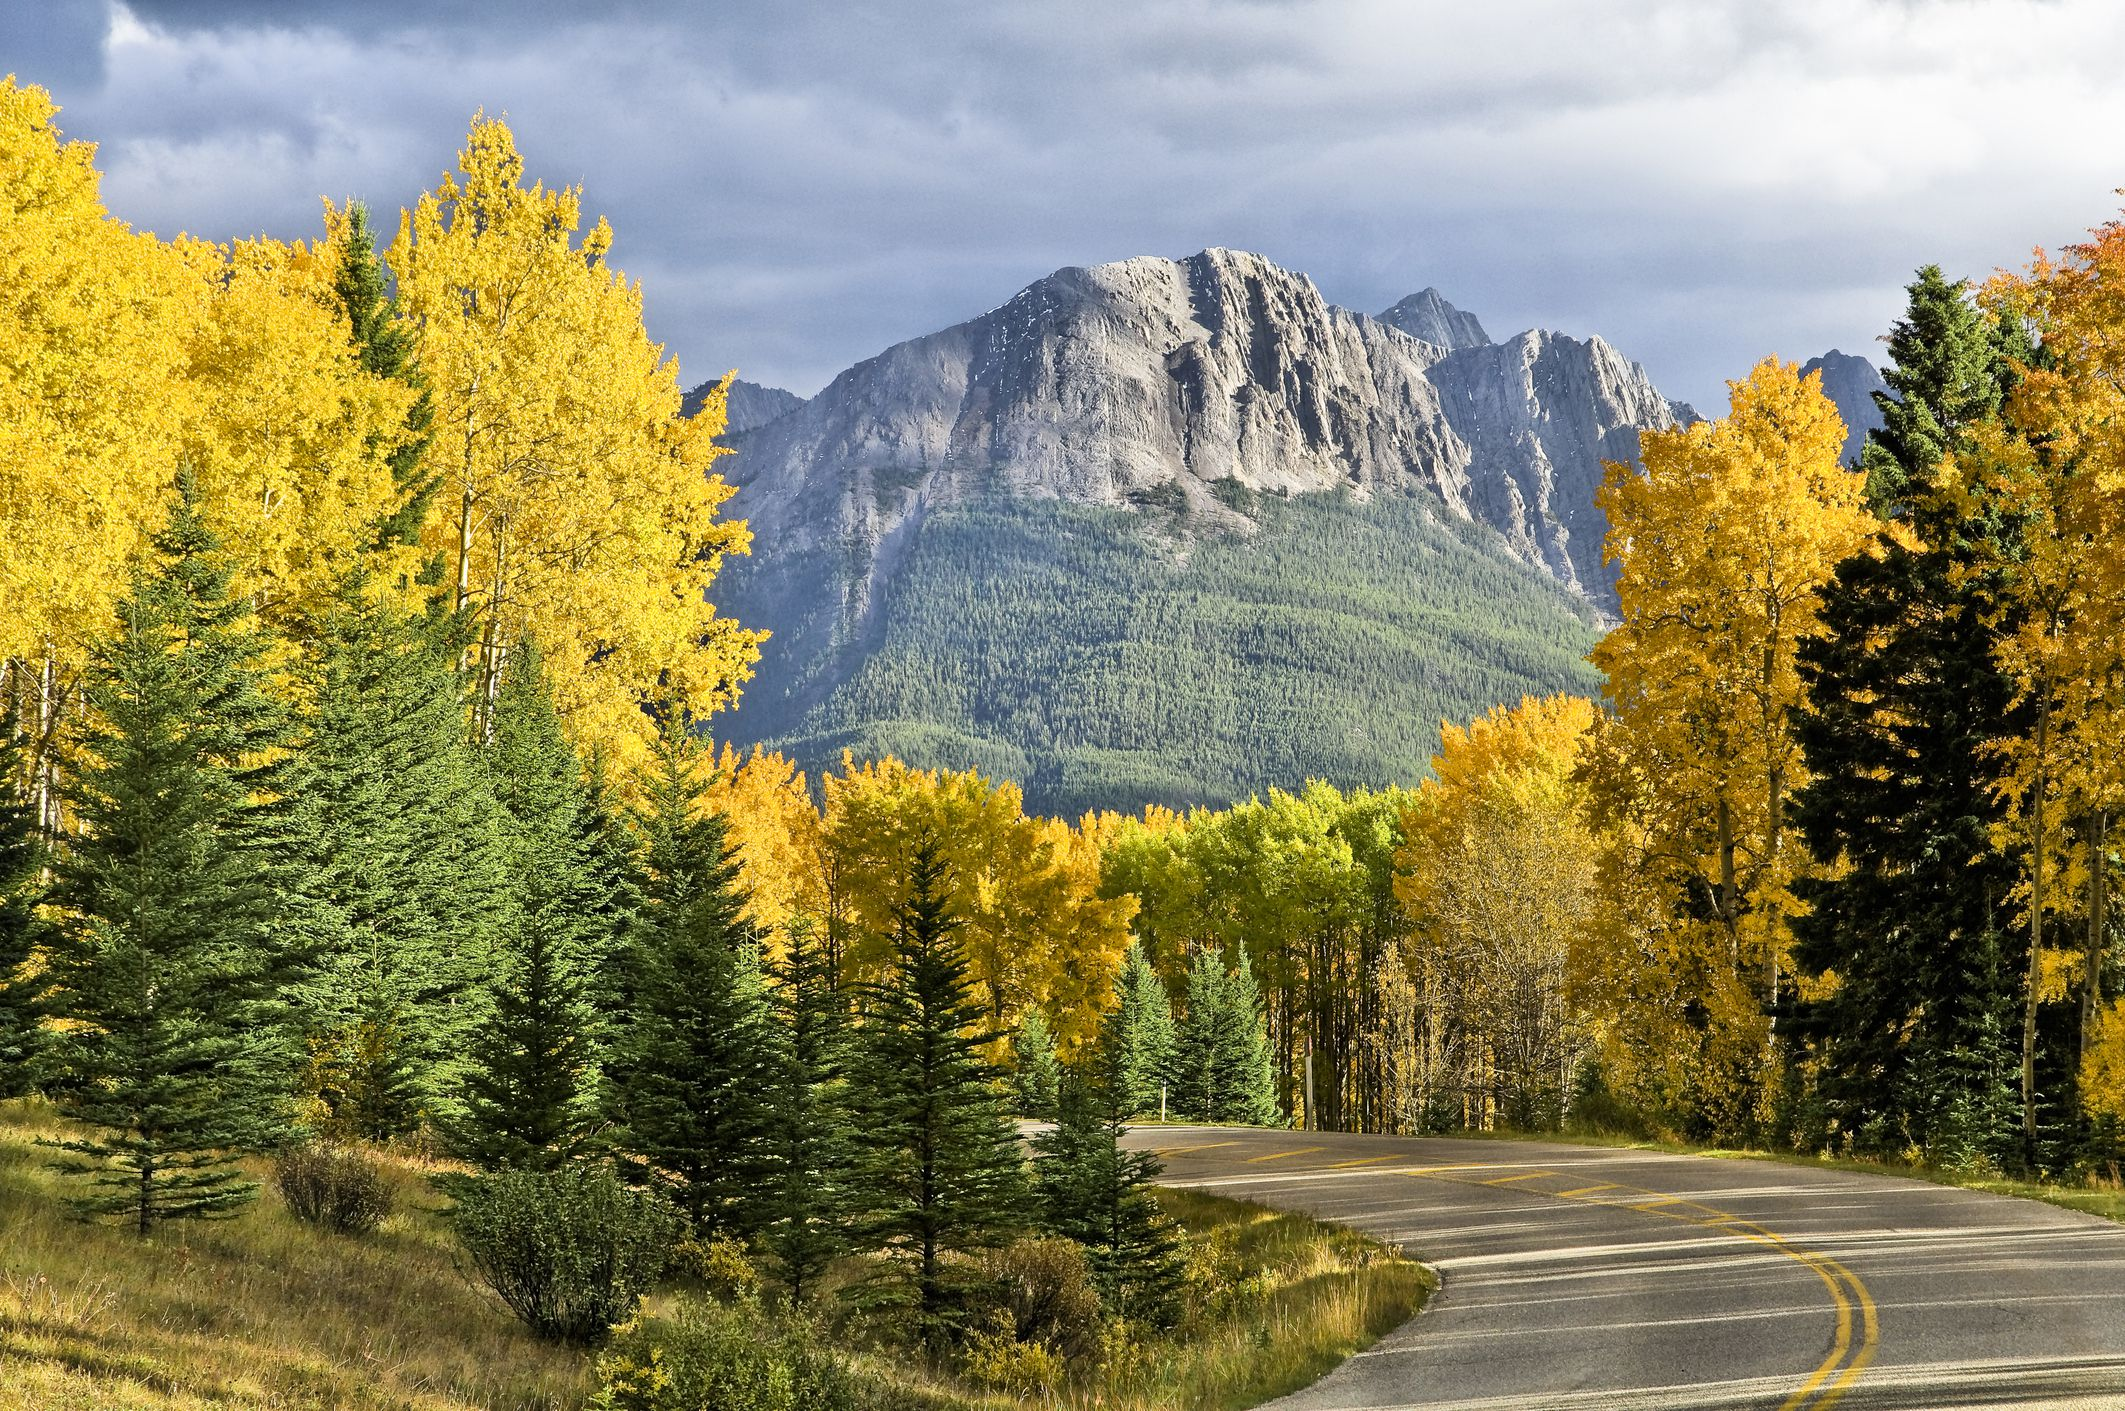 Storm light on aspen, Bow Valley Parkway, Rocky Mountains, Banff National Park, Alberta, Canada